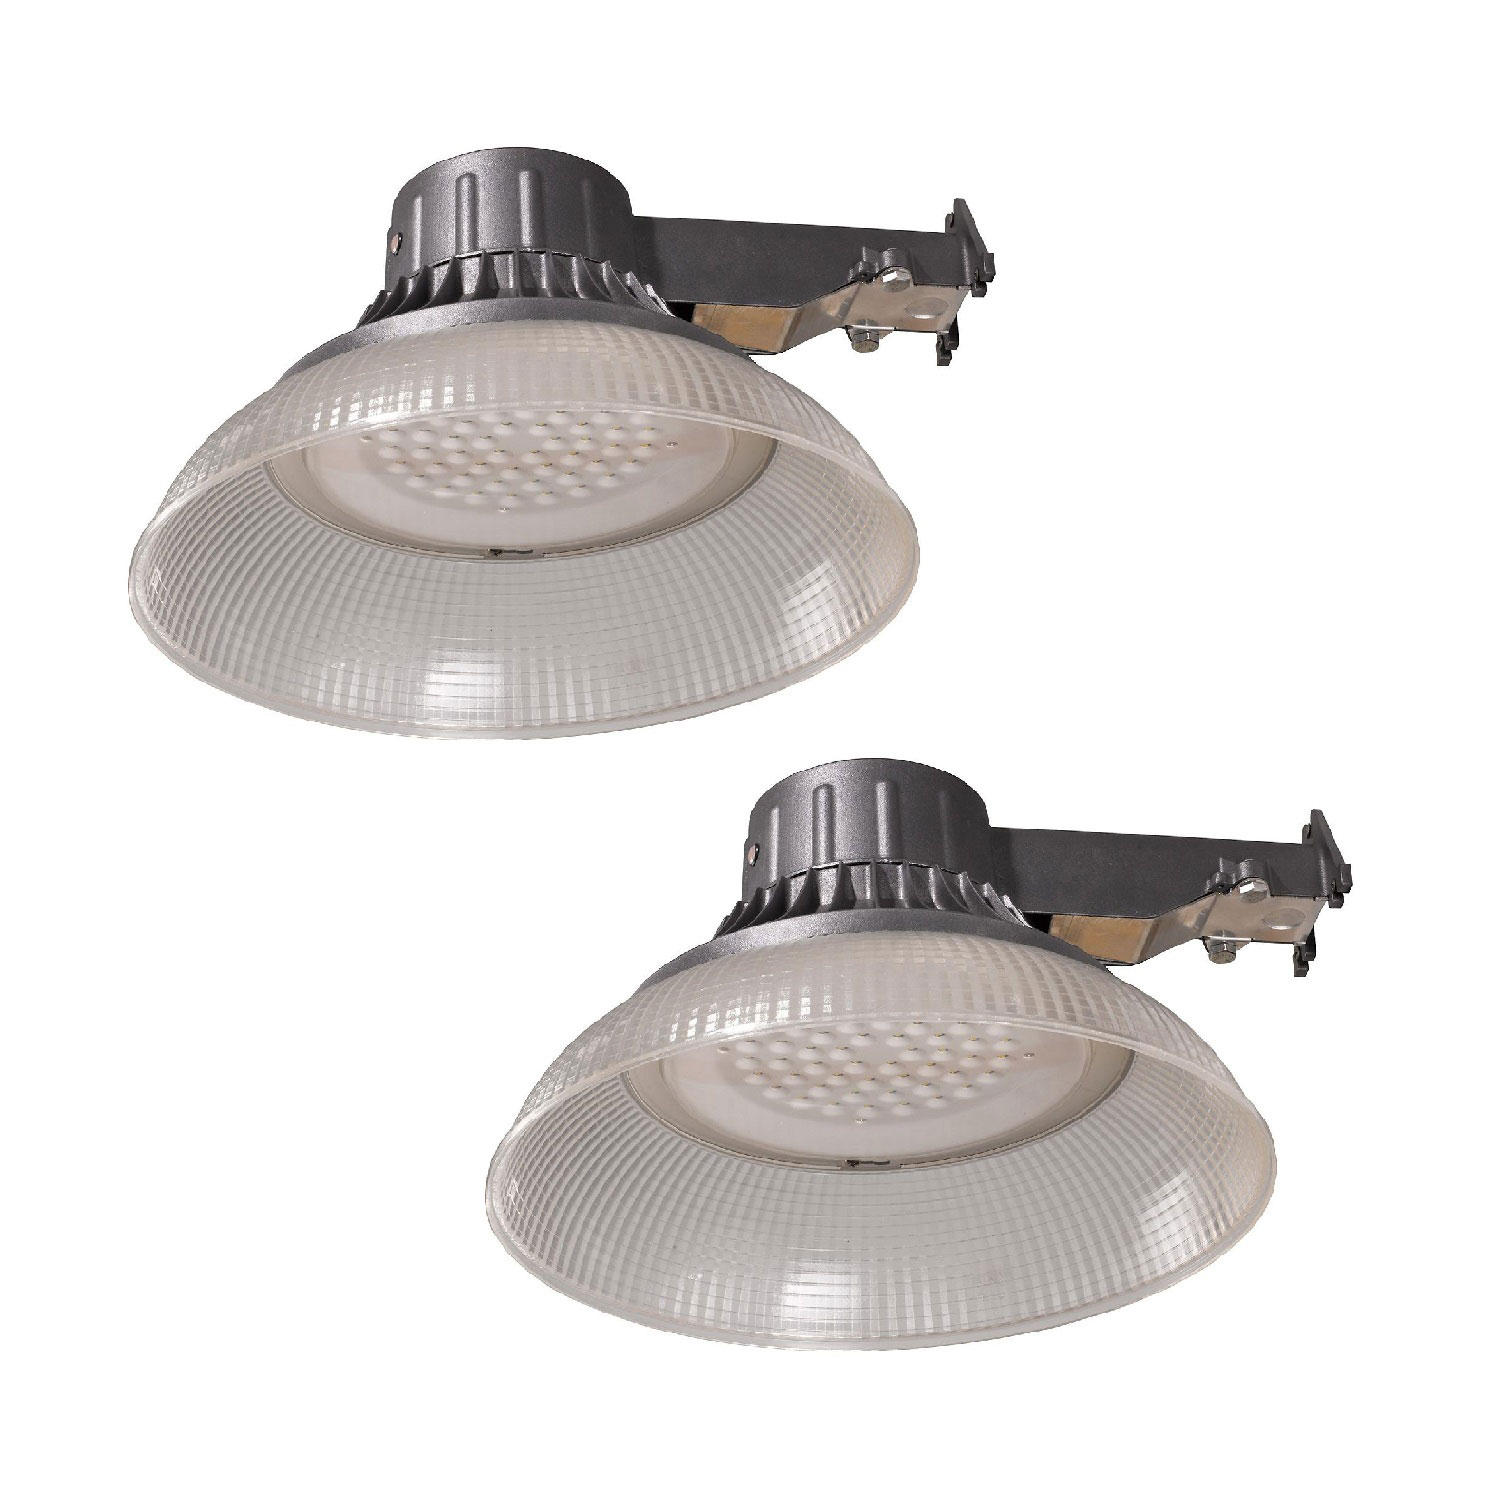 2-Pack Honeywell 5000 Lumen LED Utility Light